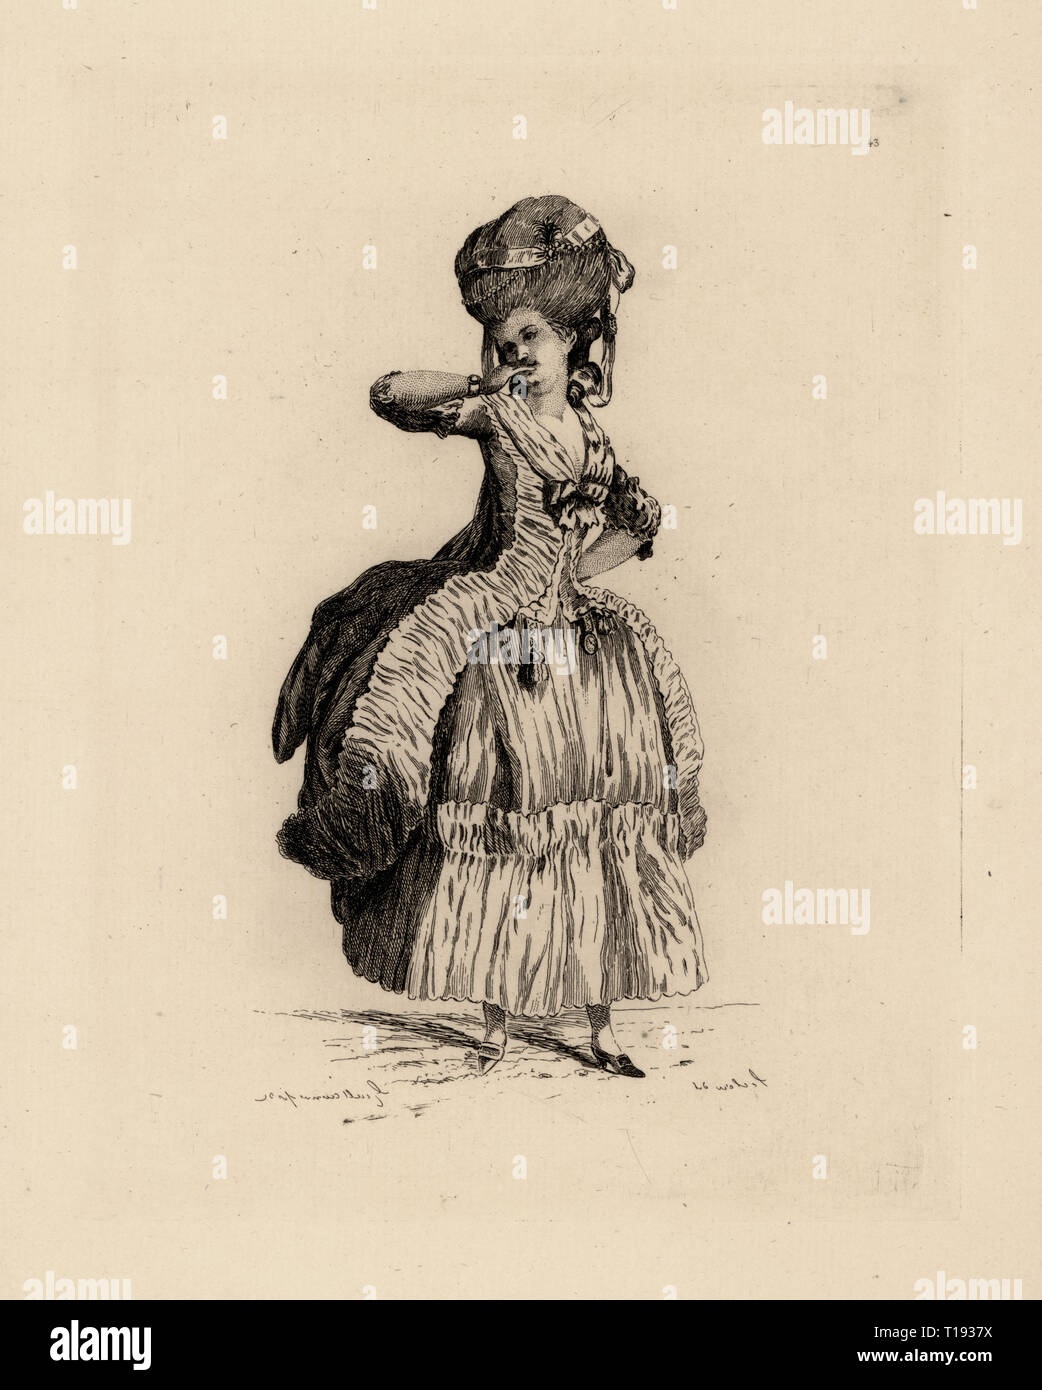 Fashionable woman in pouf hairstyle, drape skirt over petticoat, era of Marie Antoinette. Copperplate etching by Auguste Etienne Guillaumot from Costumes et coiffures du XVIIIe siecle, Costumes and hairstyles of the 18th century, Cagnon, Paris, 1875. Original illustration by Pierre Thomas Le Clerc from the Gallerie des Modes et Costumes Francais, 1778-1787. - Stock Image